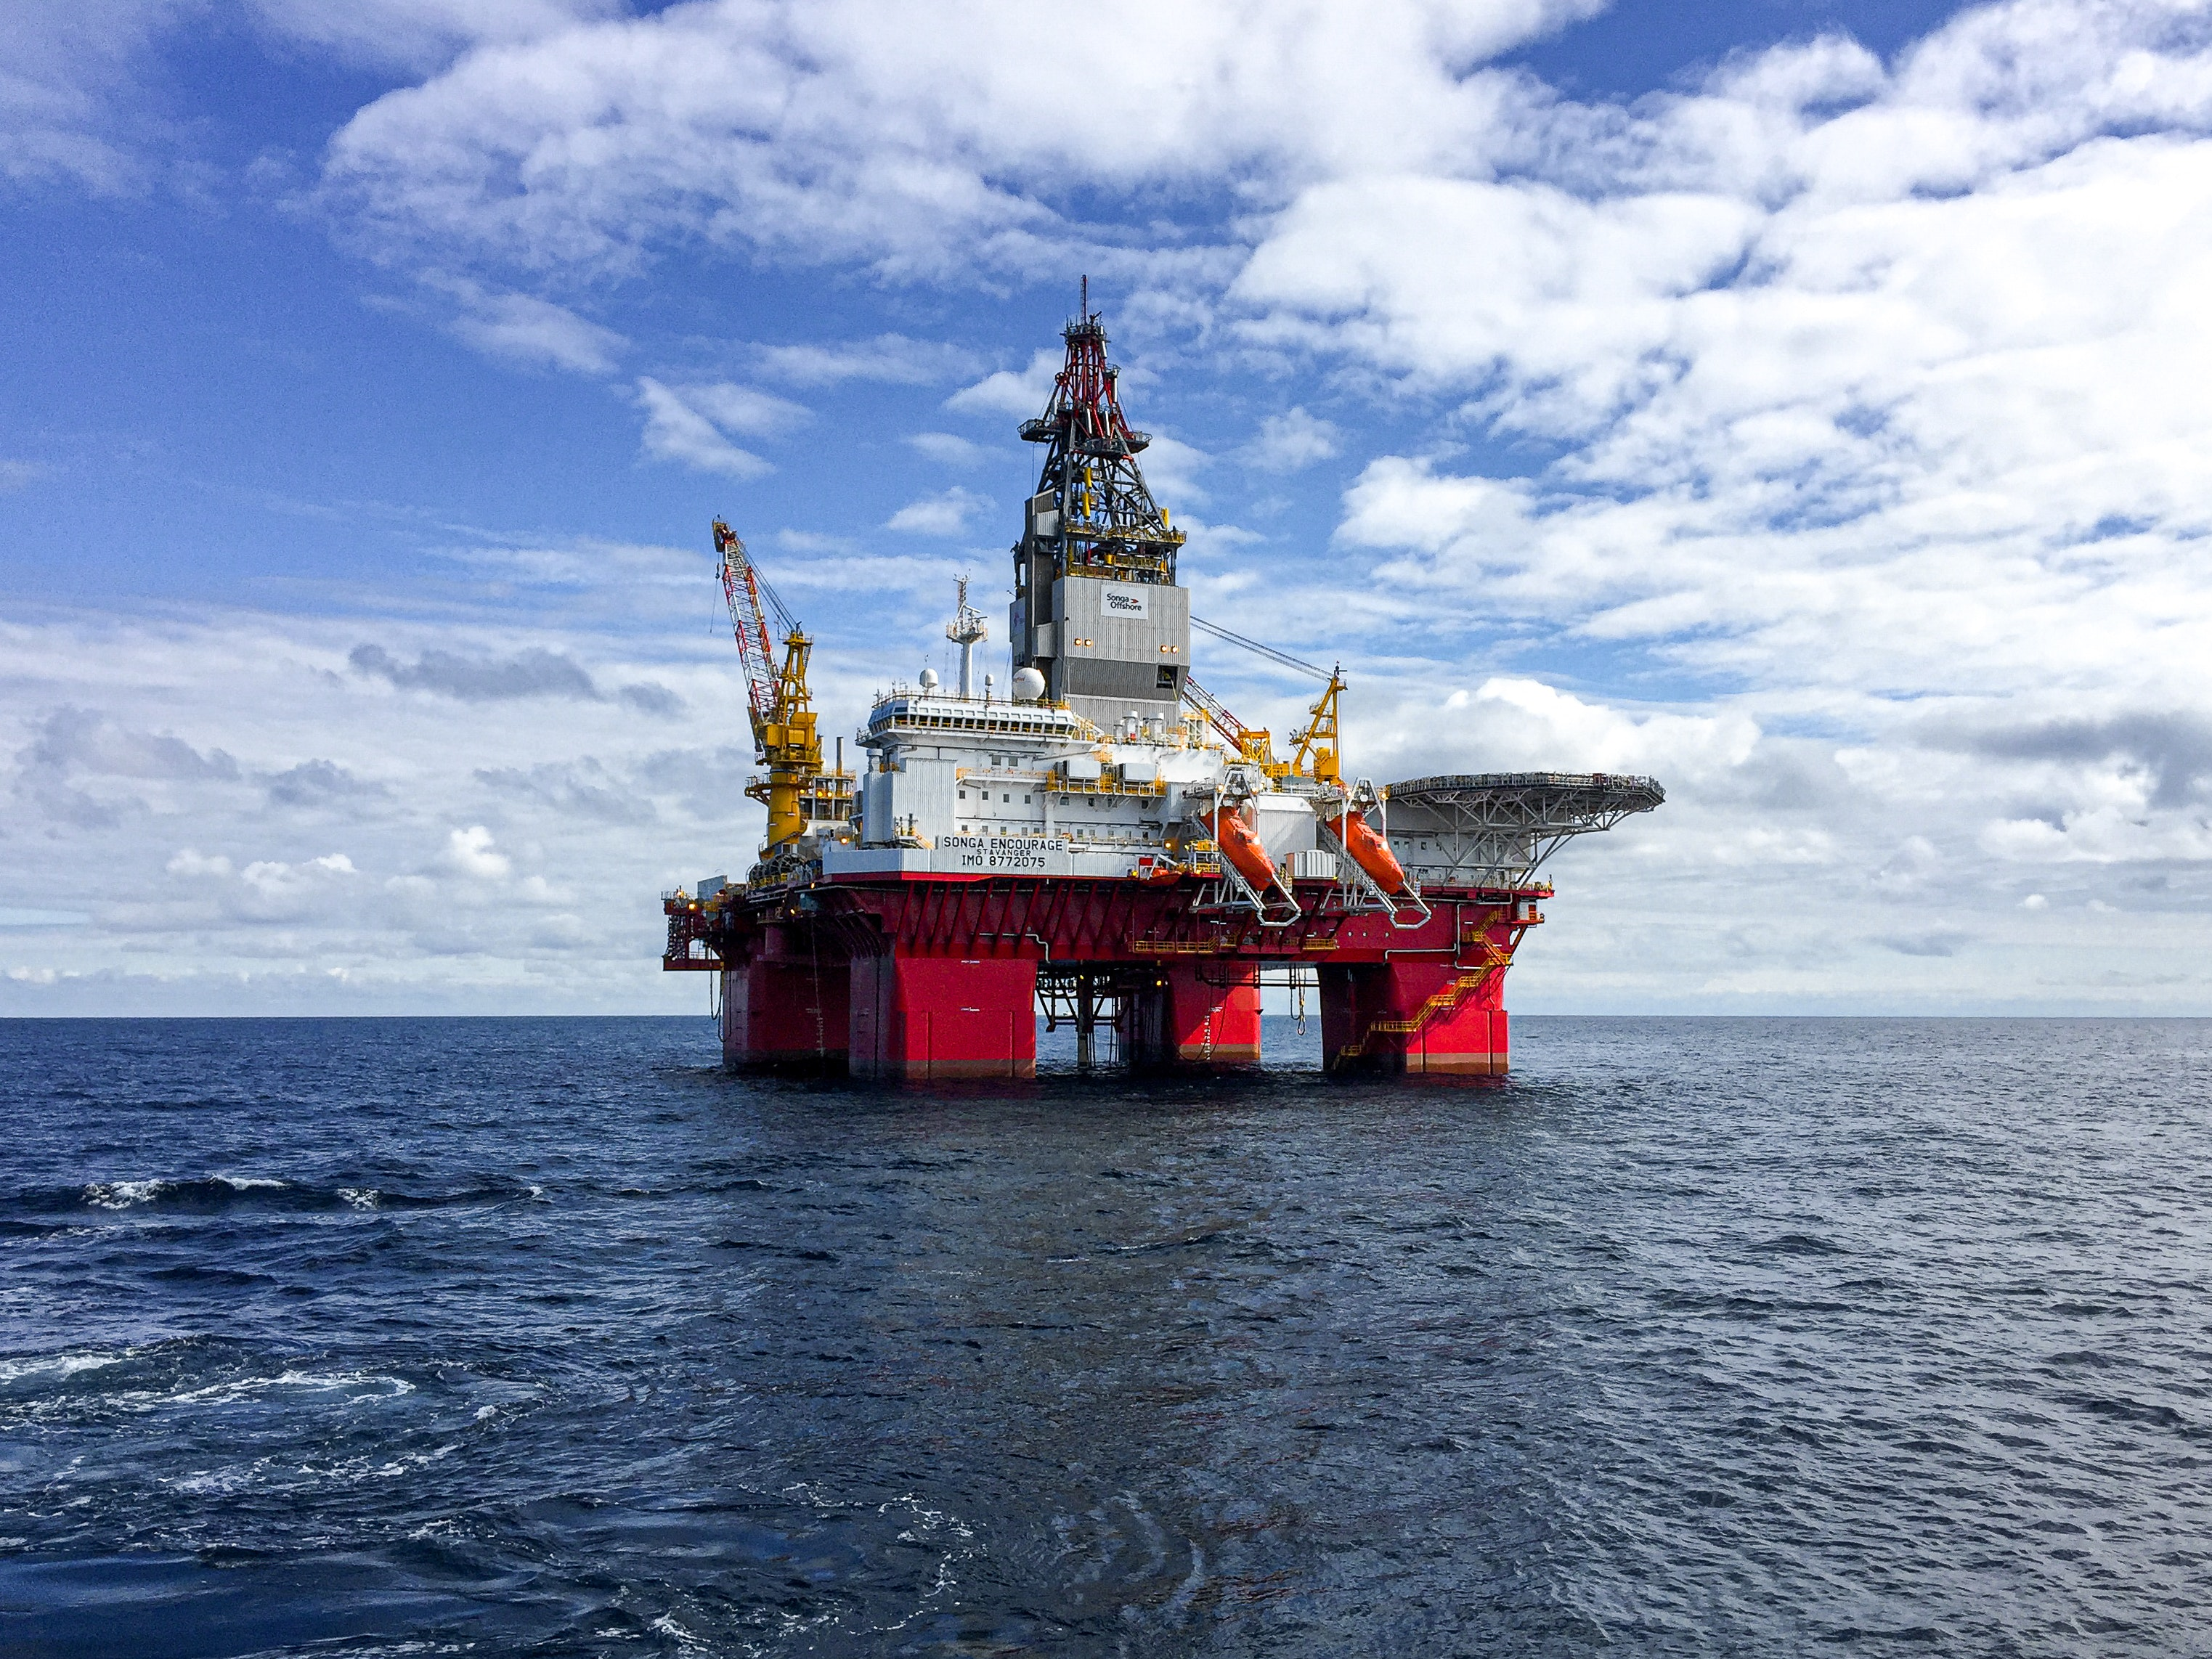 An oil and gas platform in the sea